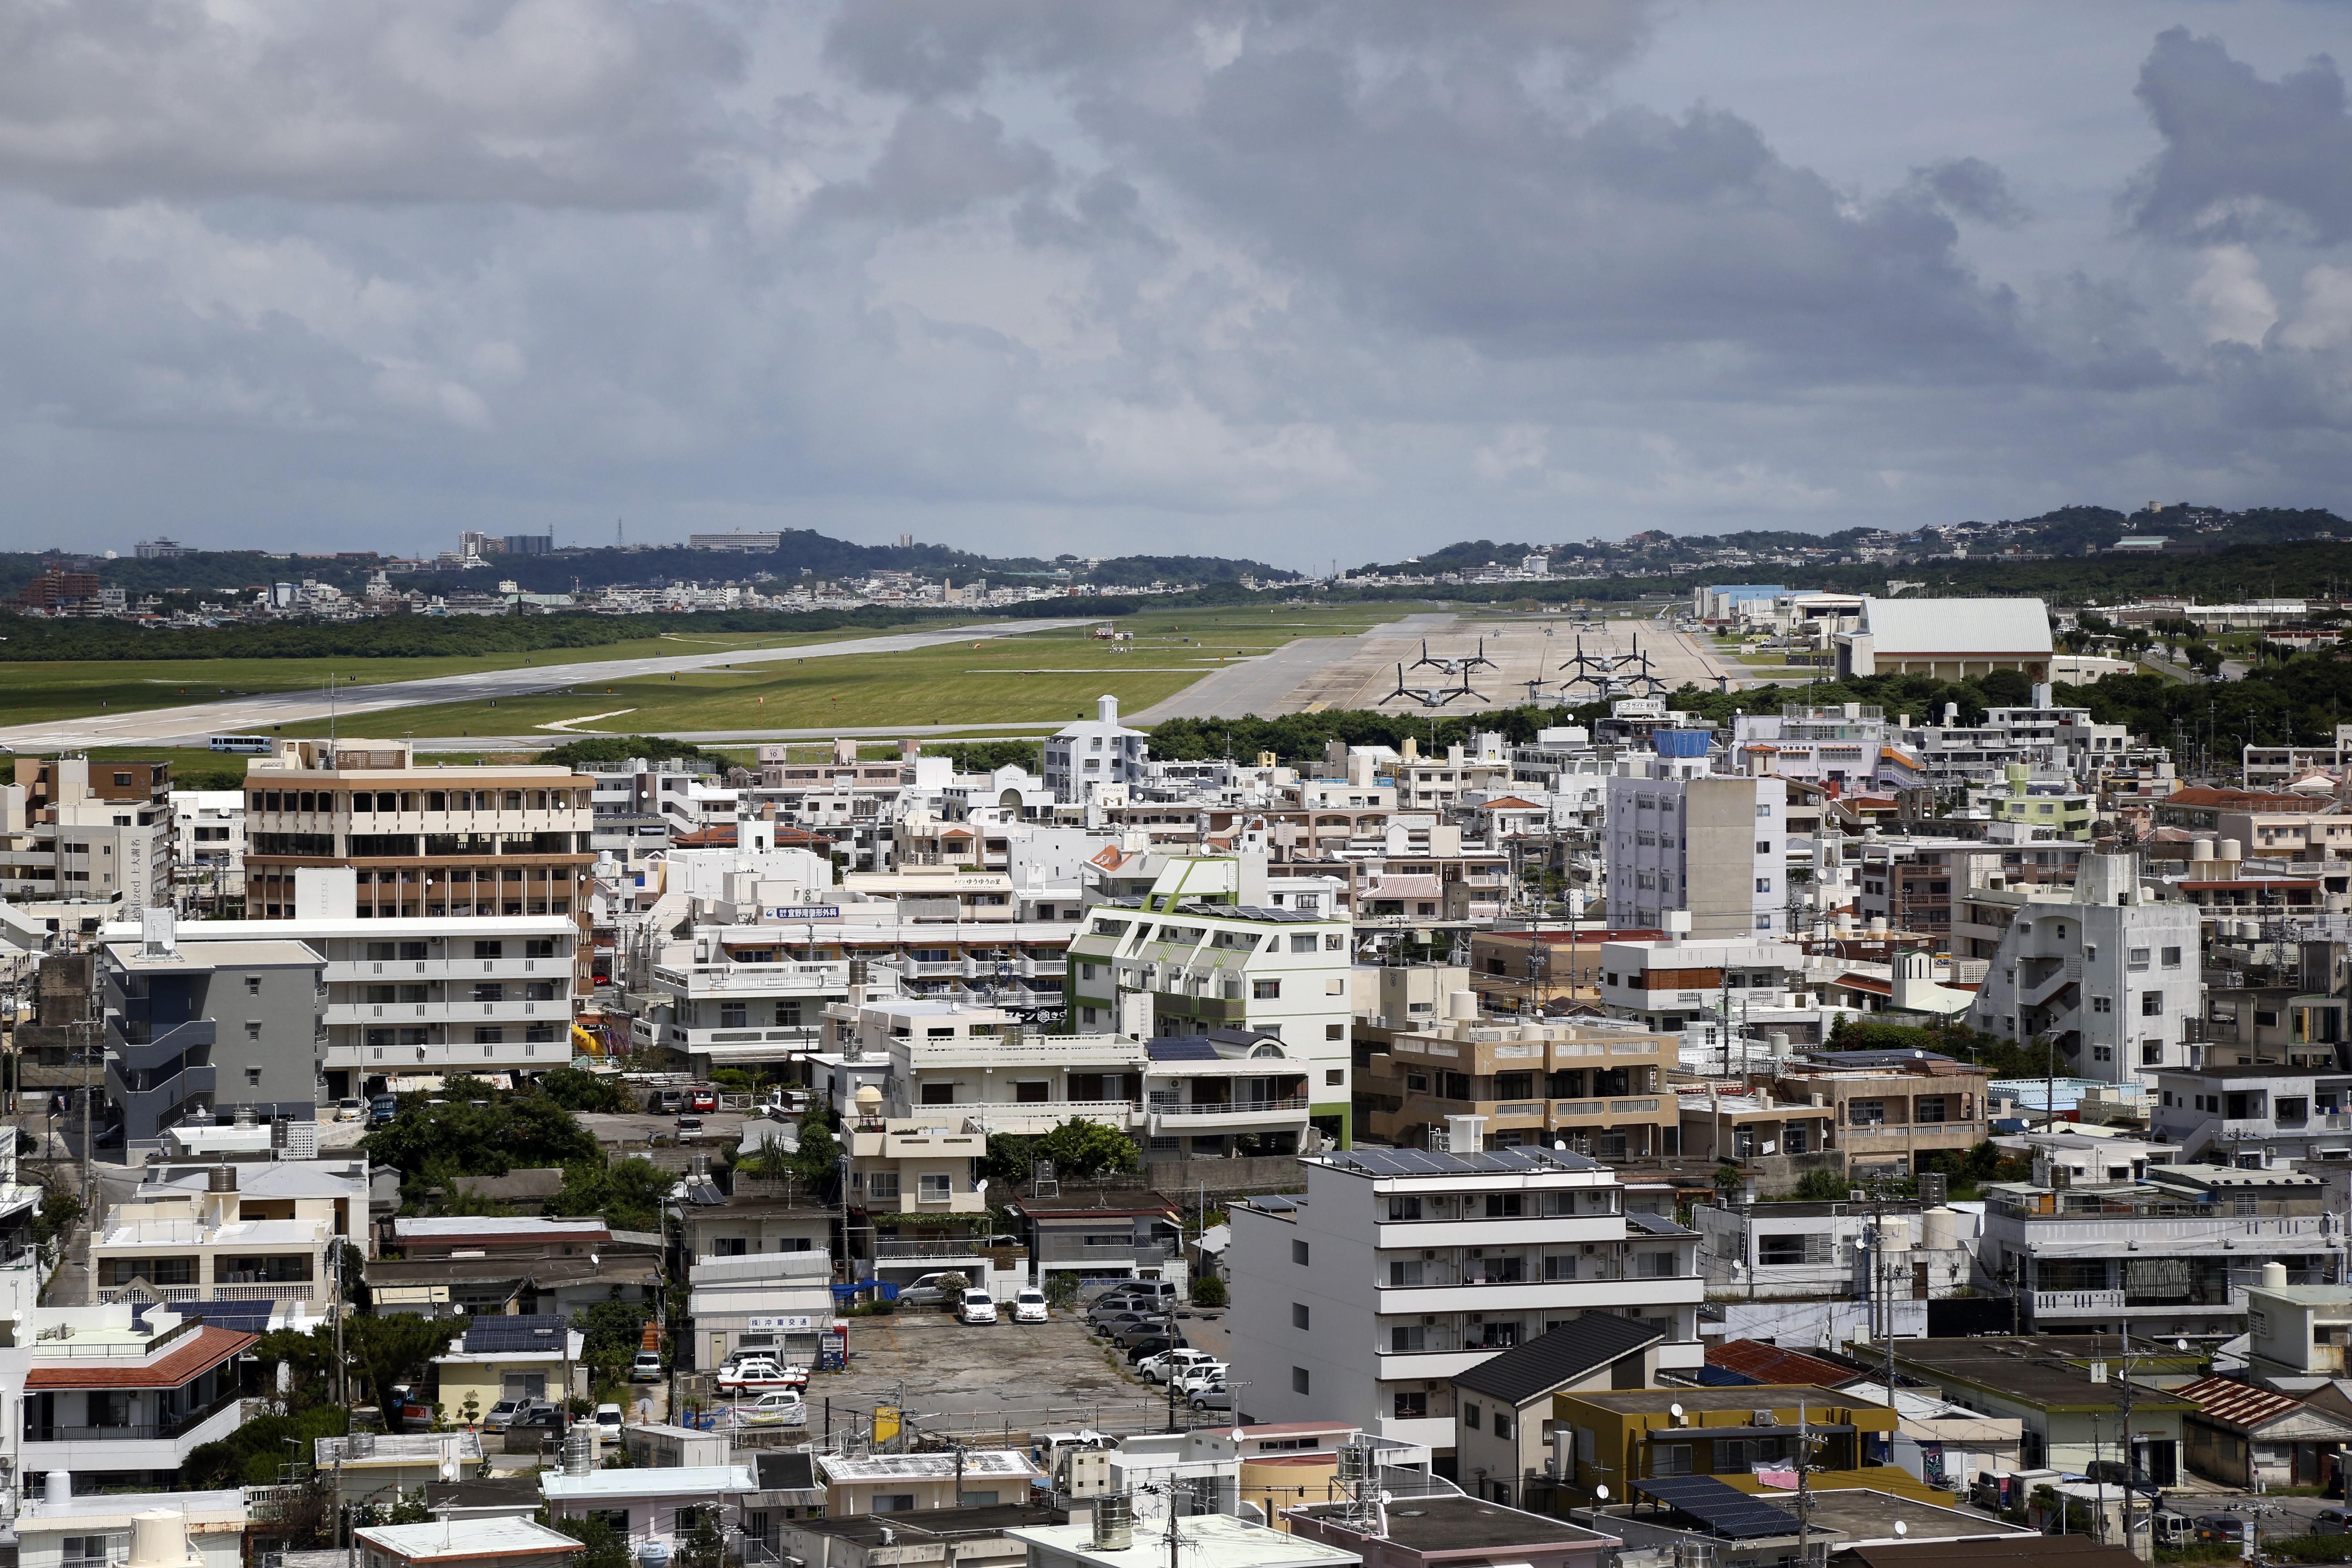 On Japan's Okinawa, U.S. military is accused of contaminating environment with hazardous chemical